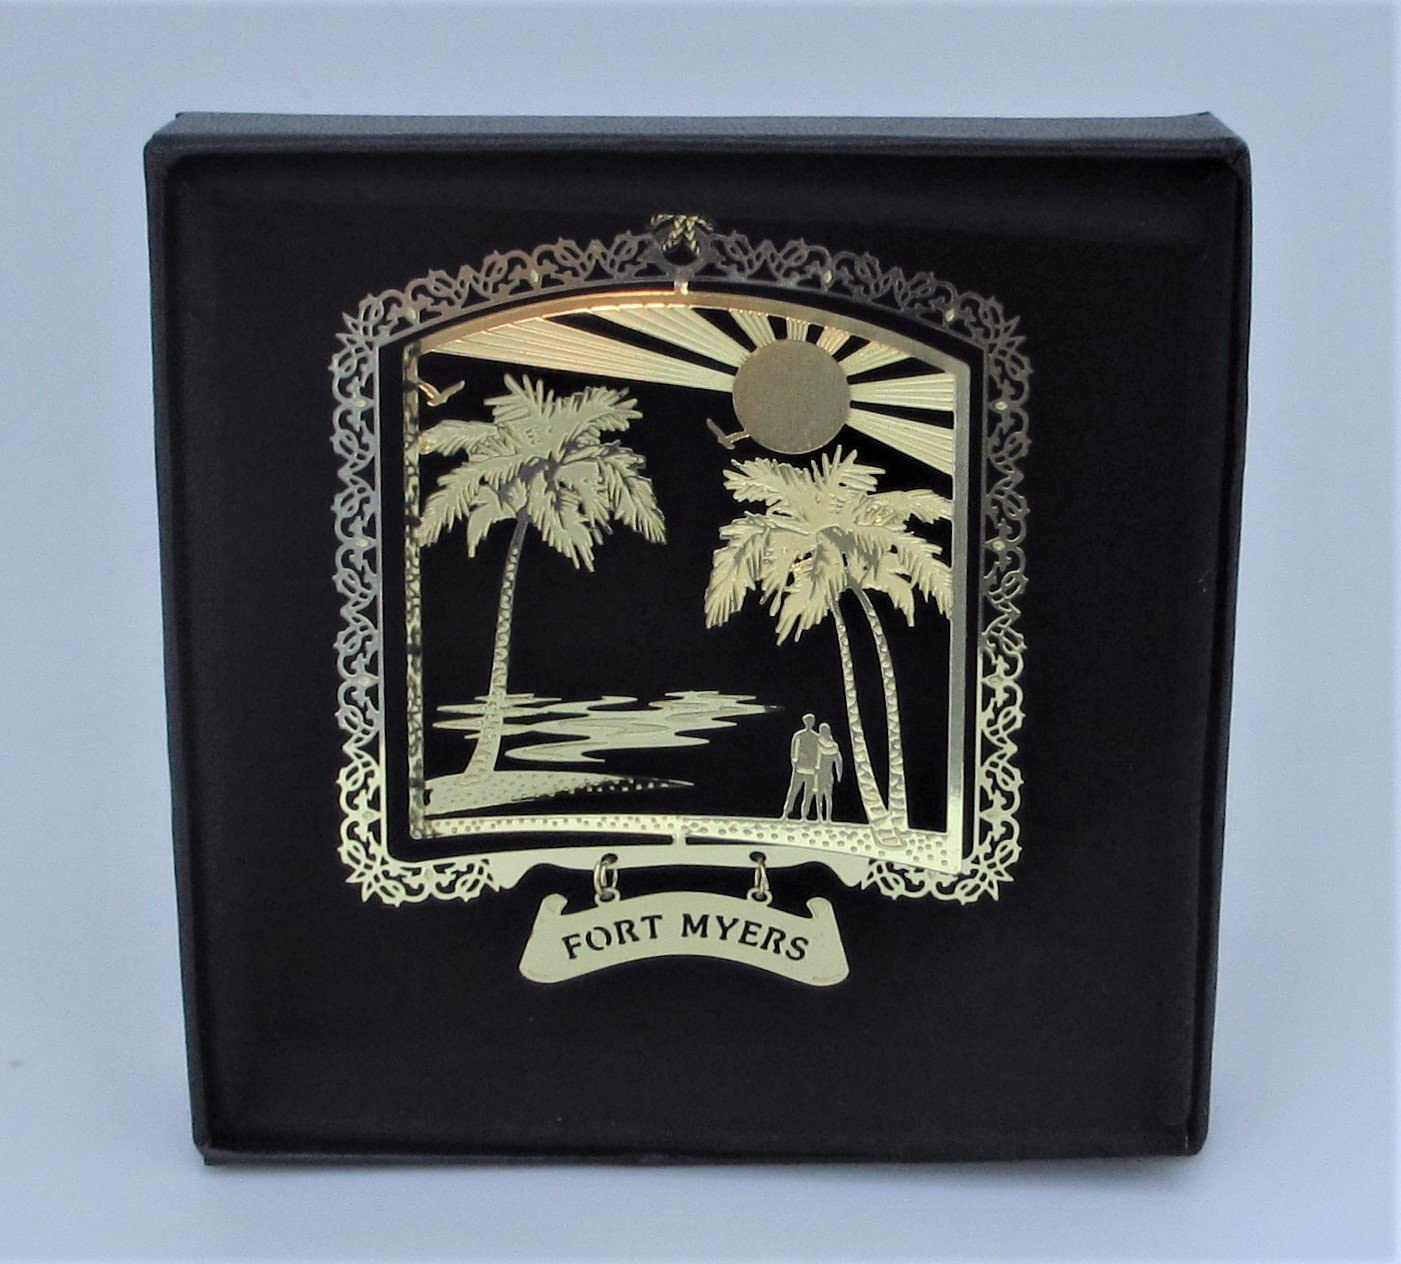 I Love My State Fort Myers Brass Ornament Florida Black Leatherette Gift Box